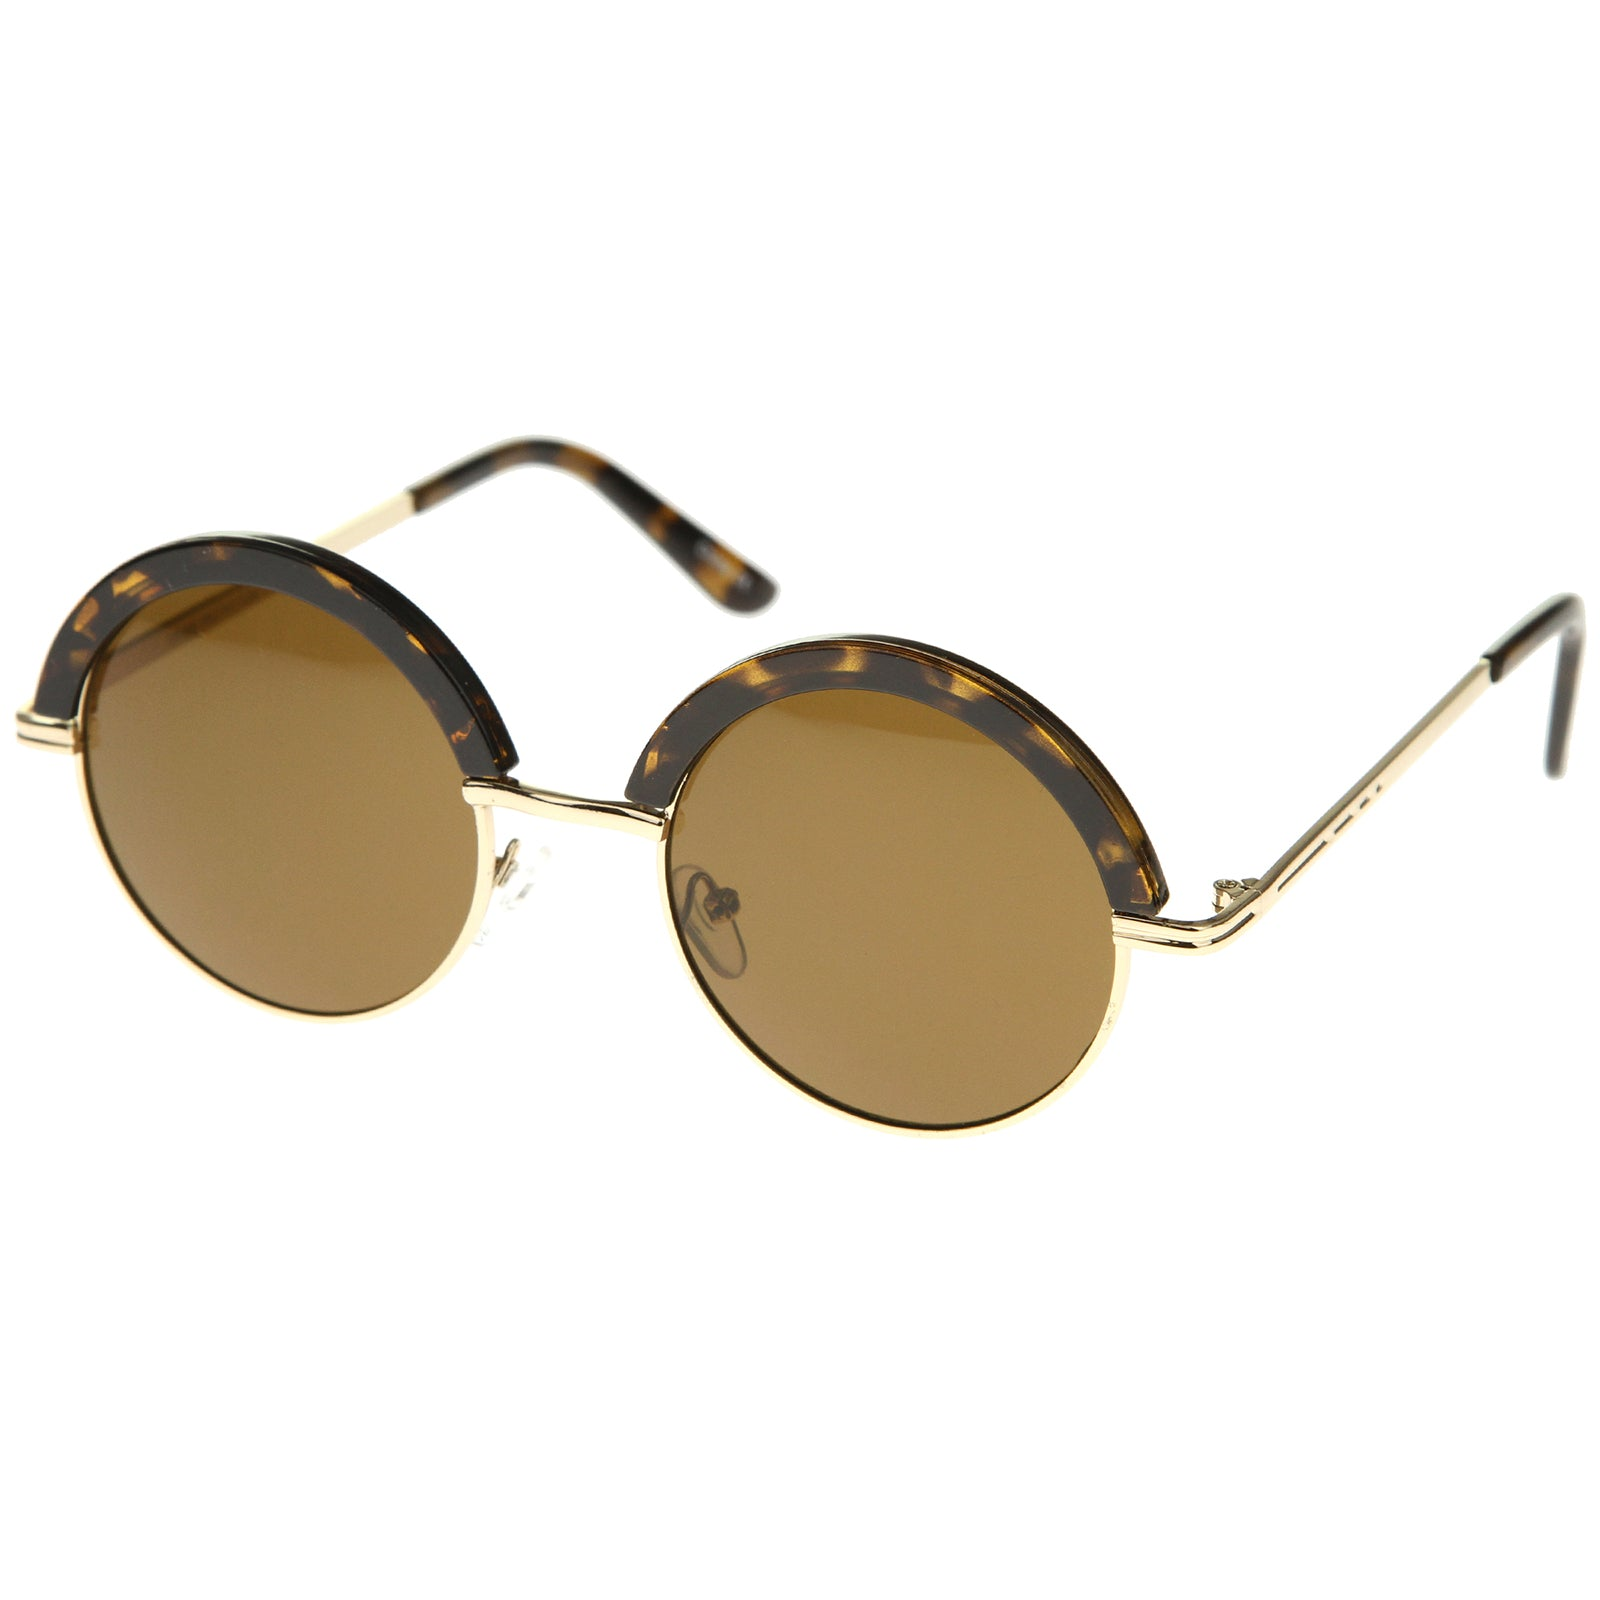 Womens Metal Round Sunglasses With UV400 Protected Composite Lens - sunglass.la - 6